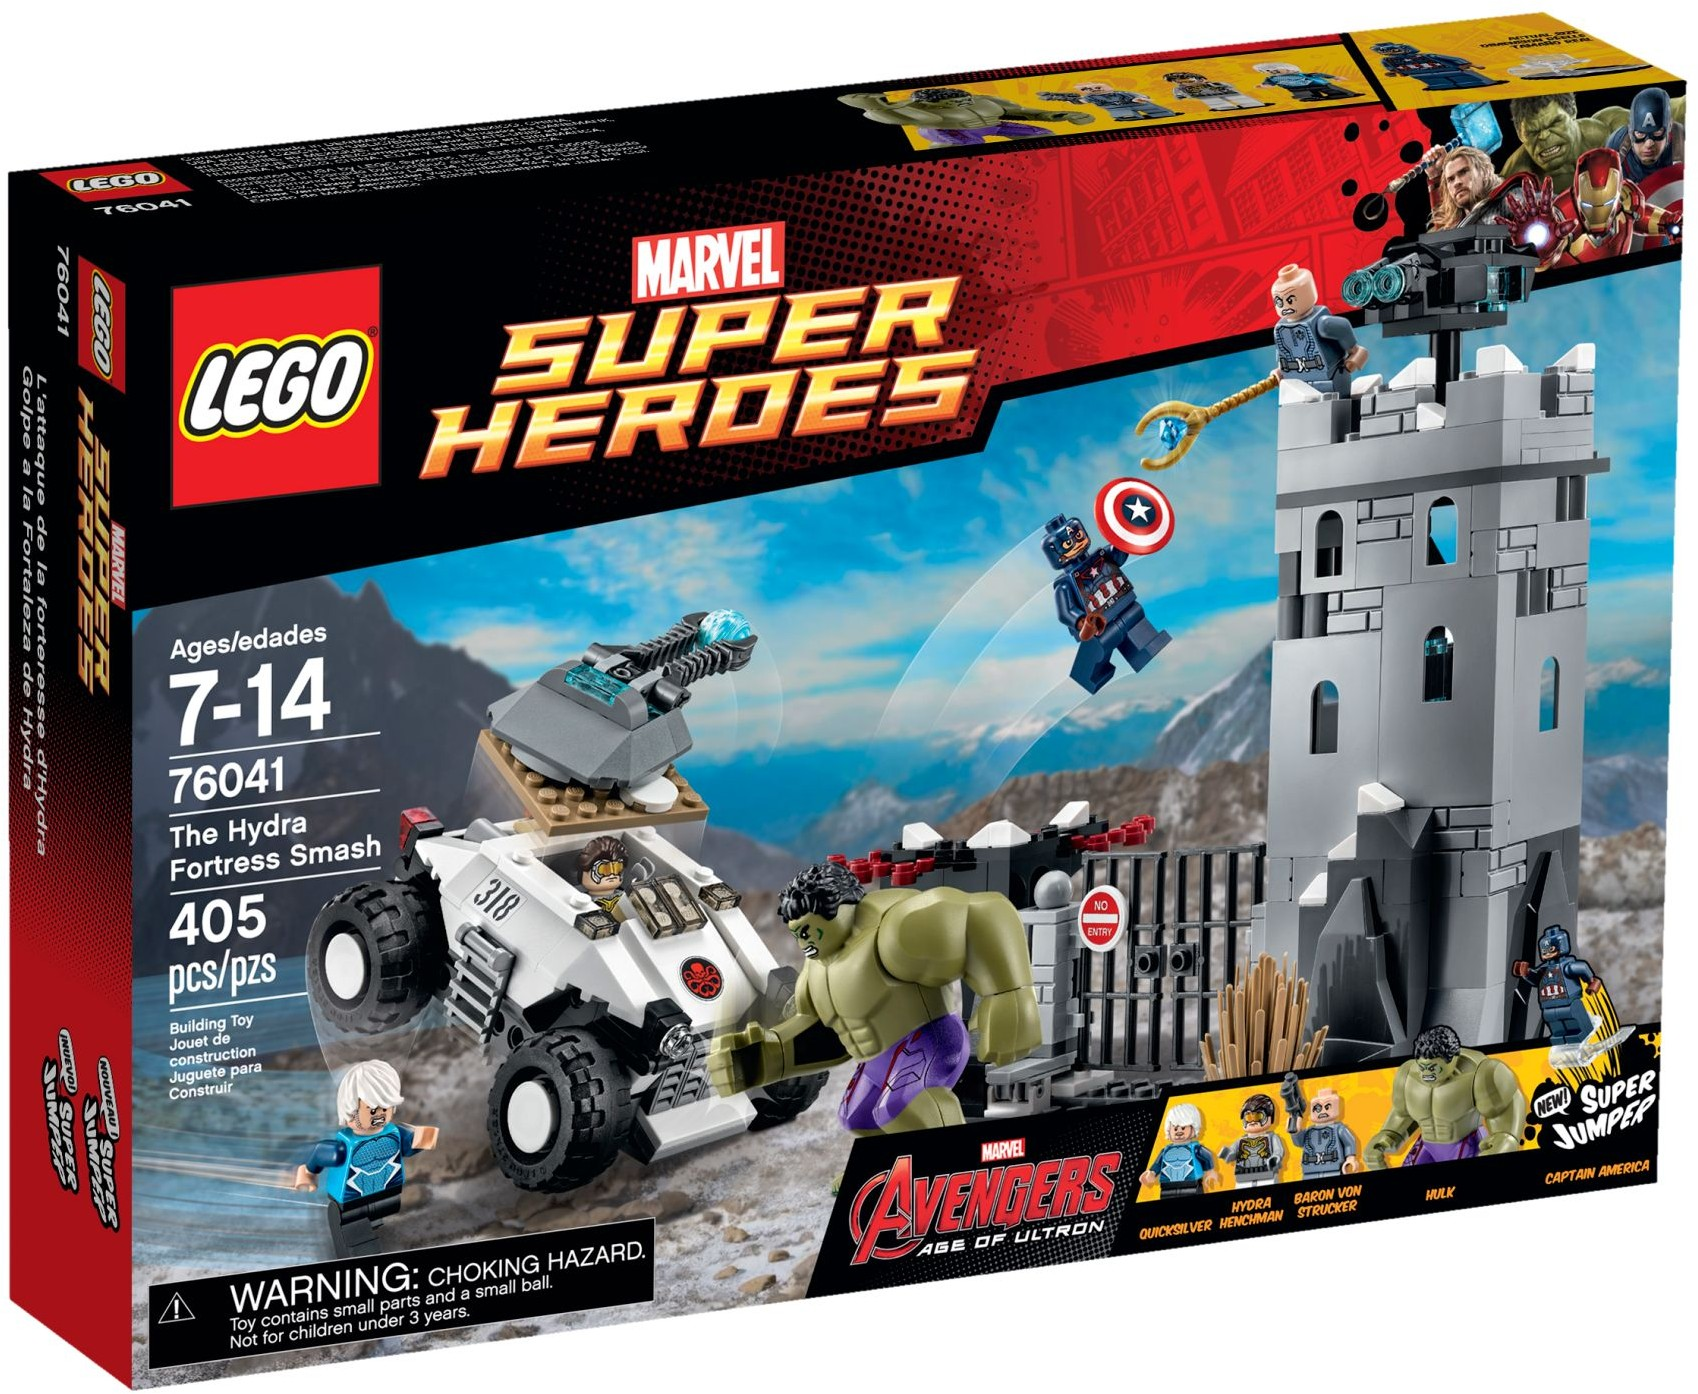 LEGO 76041 - Super Heroes - The Hydra Fortress Smash